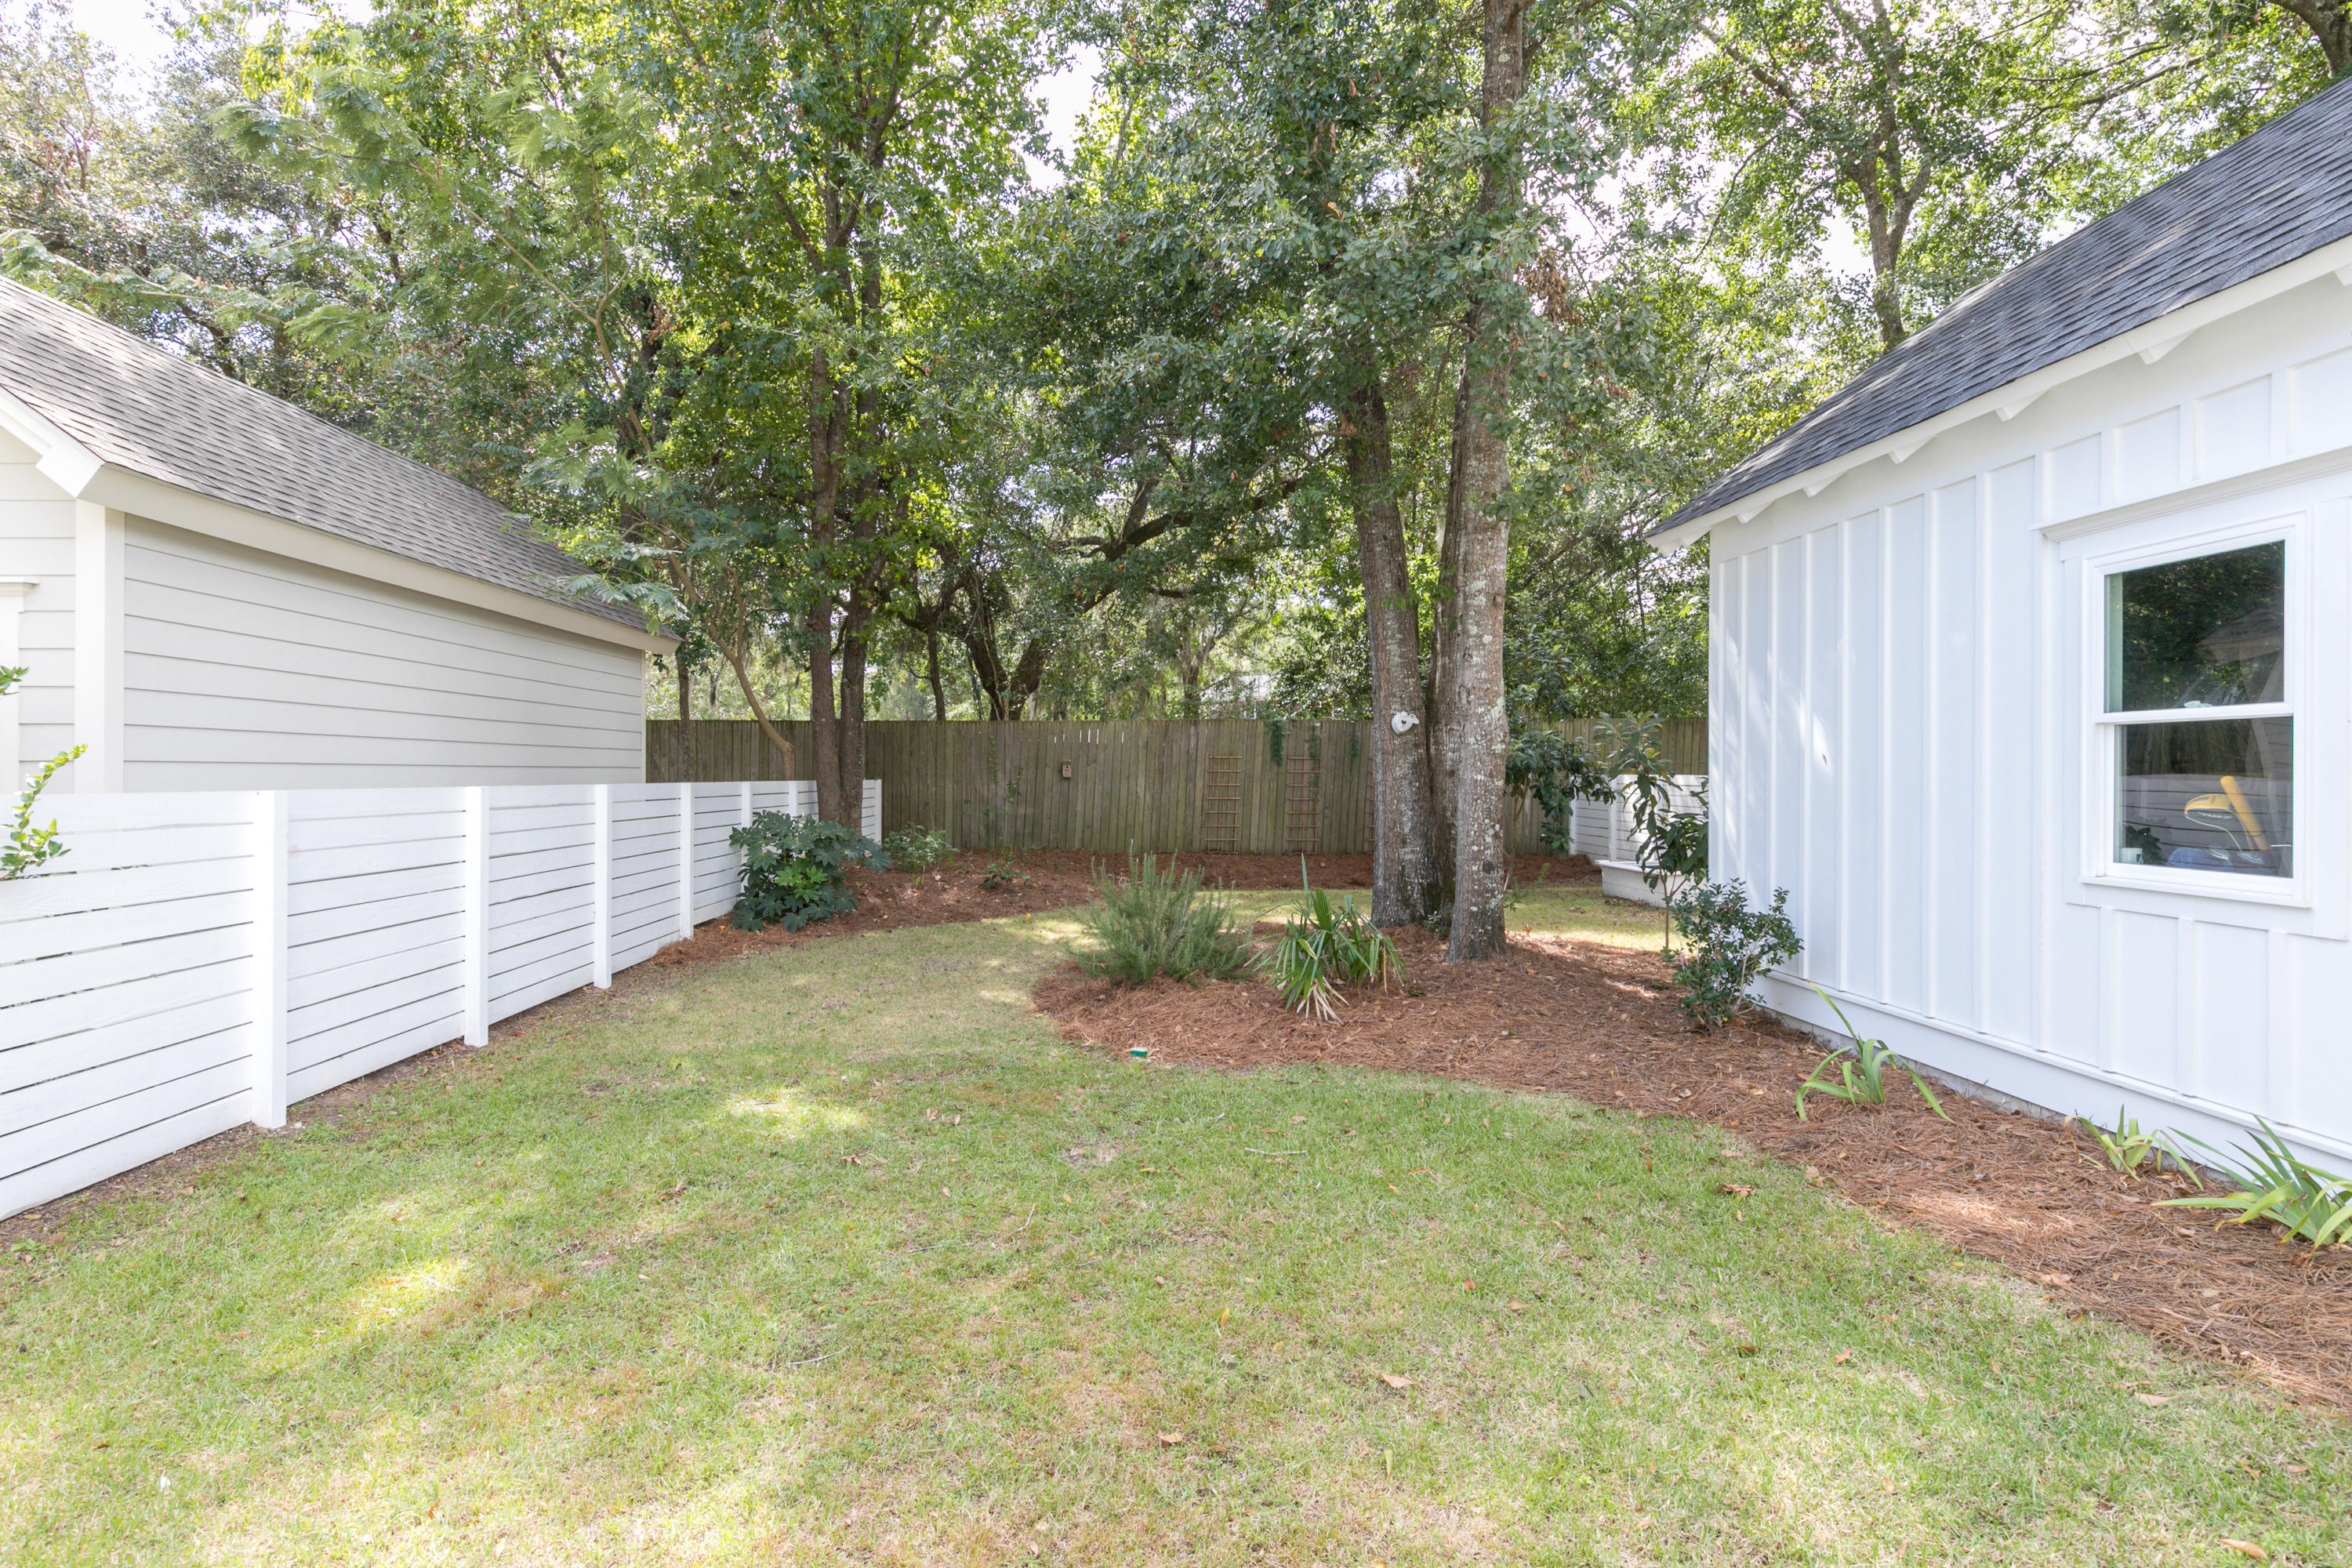 Wexford Park Homes For Sale - 1133 Wexford, Mount Pleasant, SC - 2